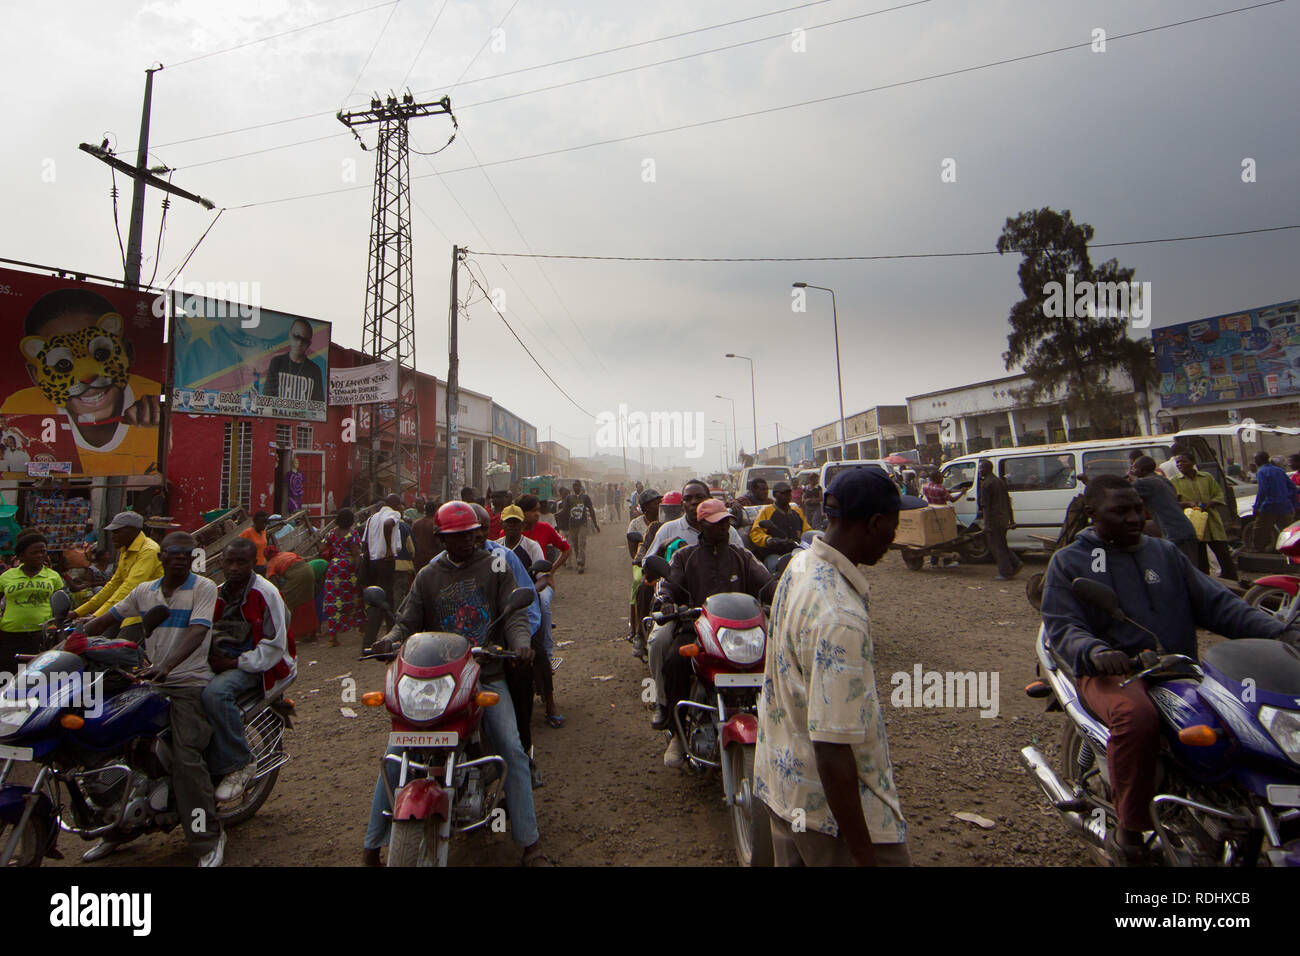 The roads in Goma, North Kivu, Democratic Republic of Congo are dusty, congested, and chaotic. - Stock Image